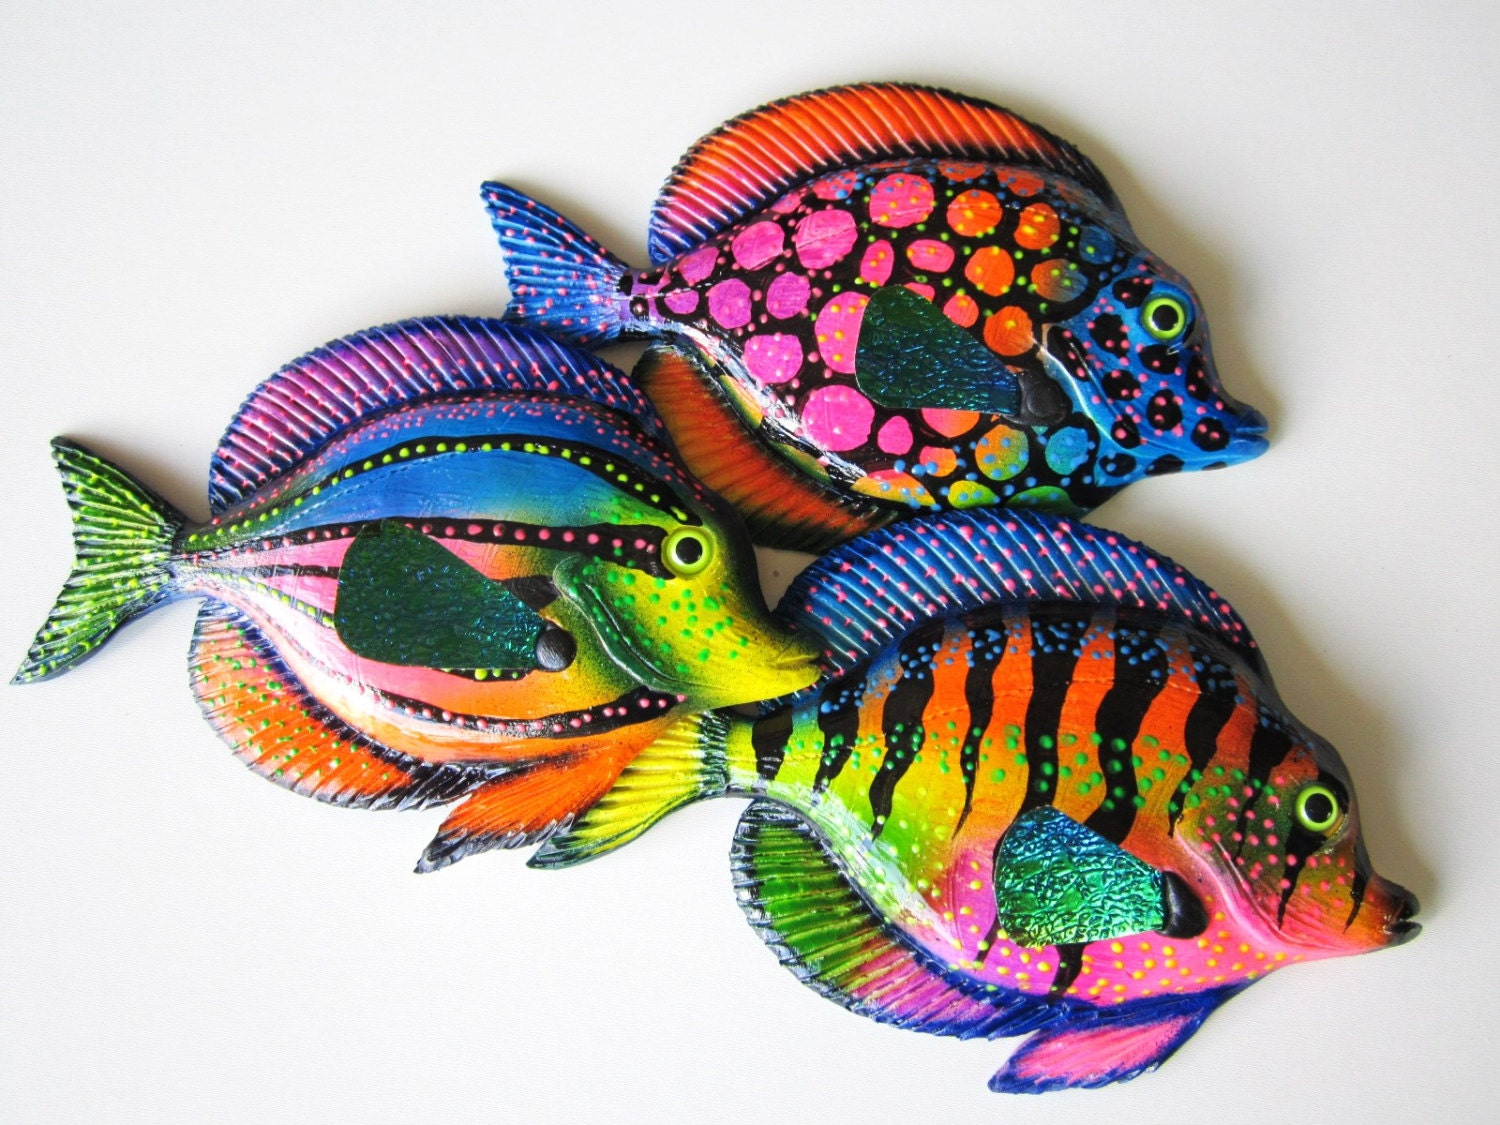 Wall Decor With Fish : Fish home wall decor hanging whimsical art